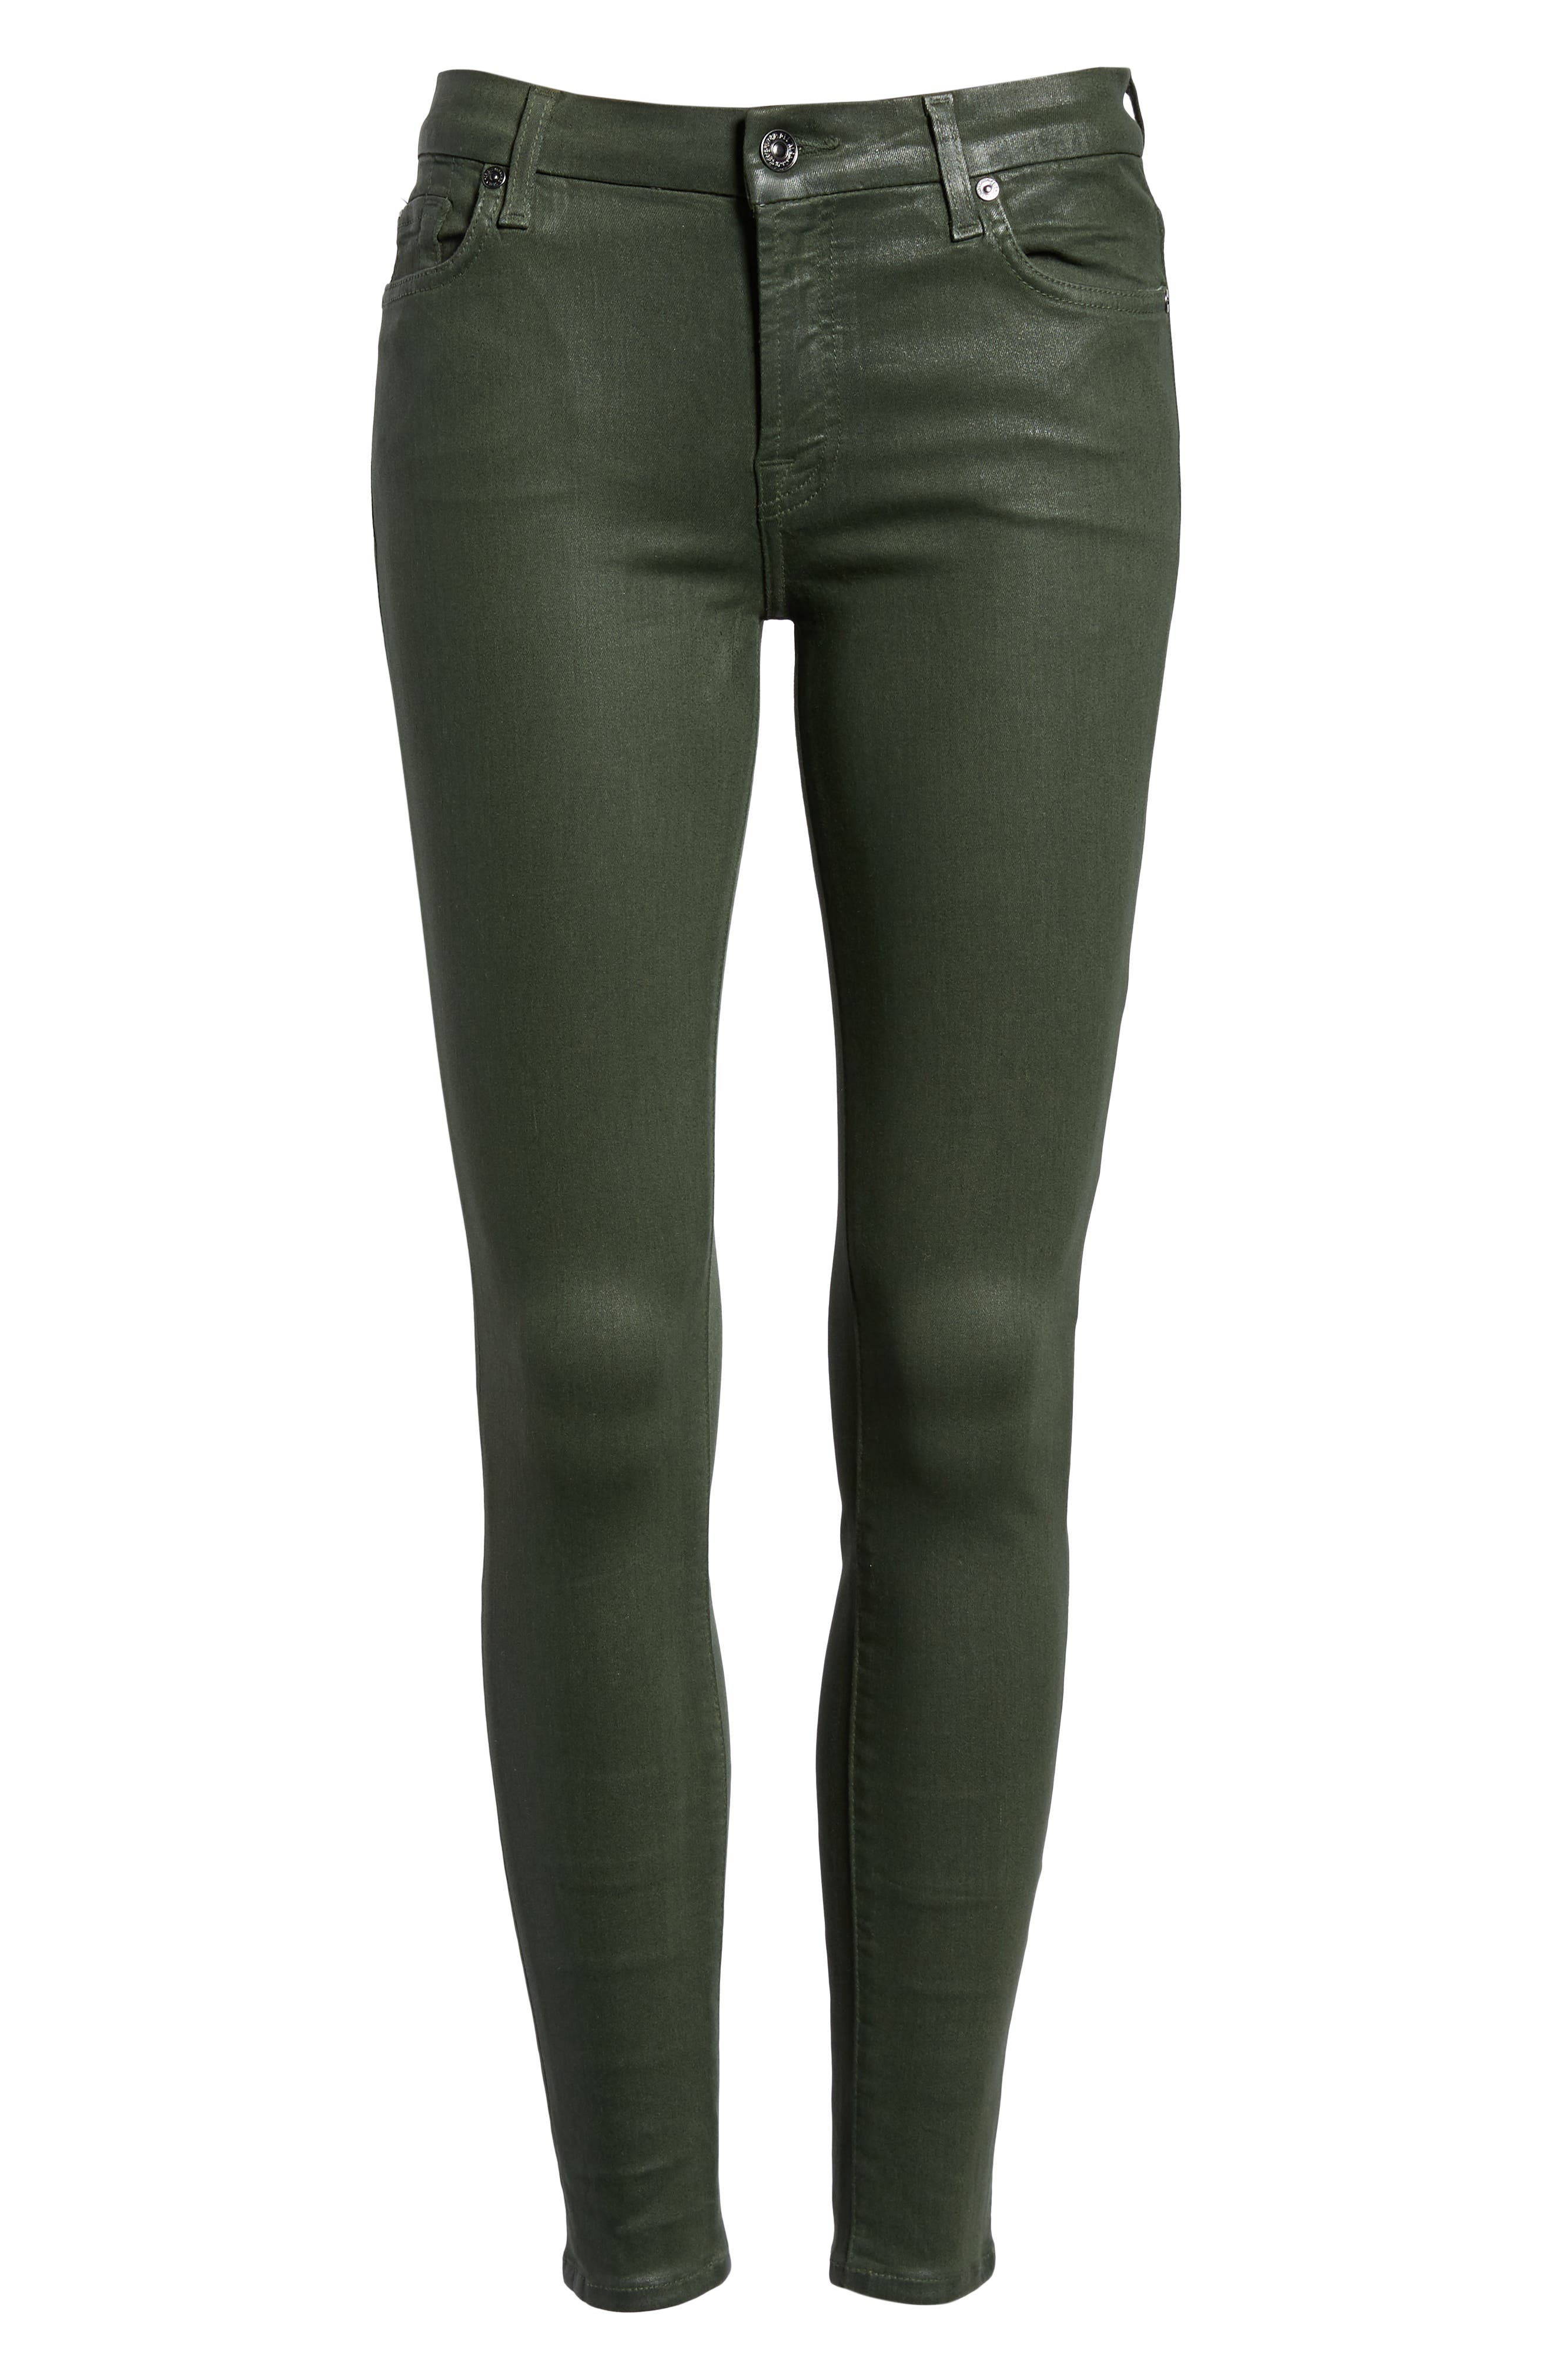 Coated Ankle Skinny Jeans,                             Alternate thumbnail 7, color,                             COATED MOSS GREEN